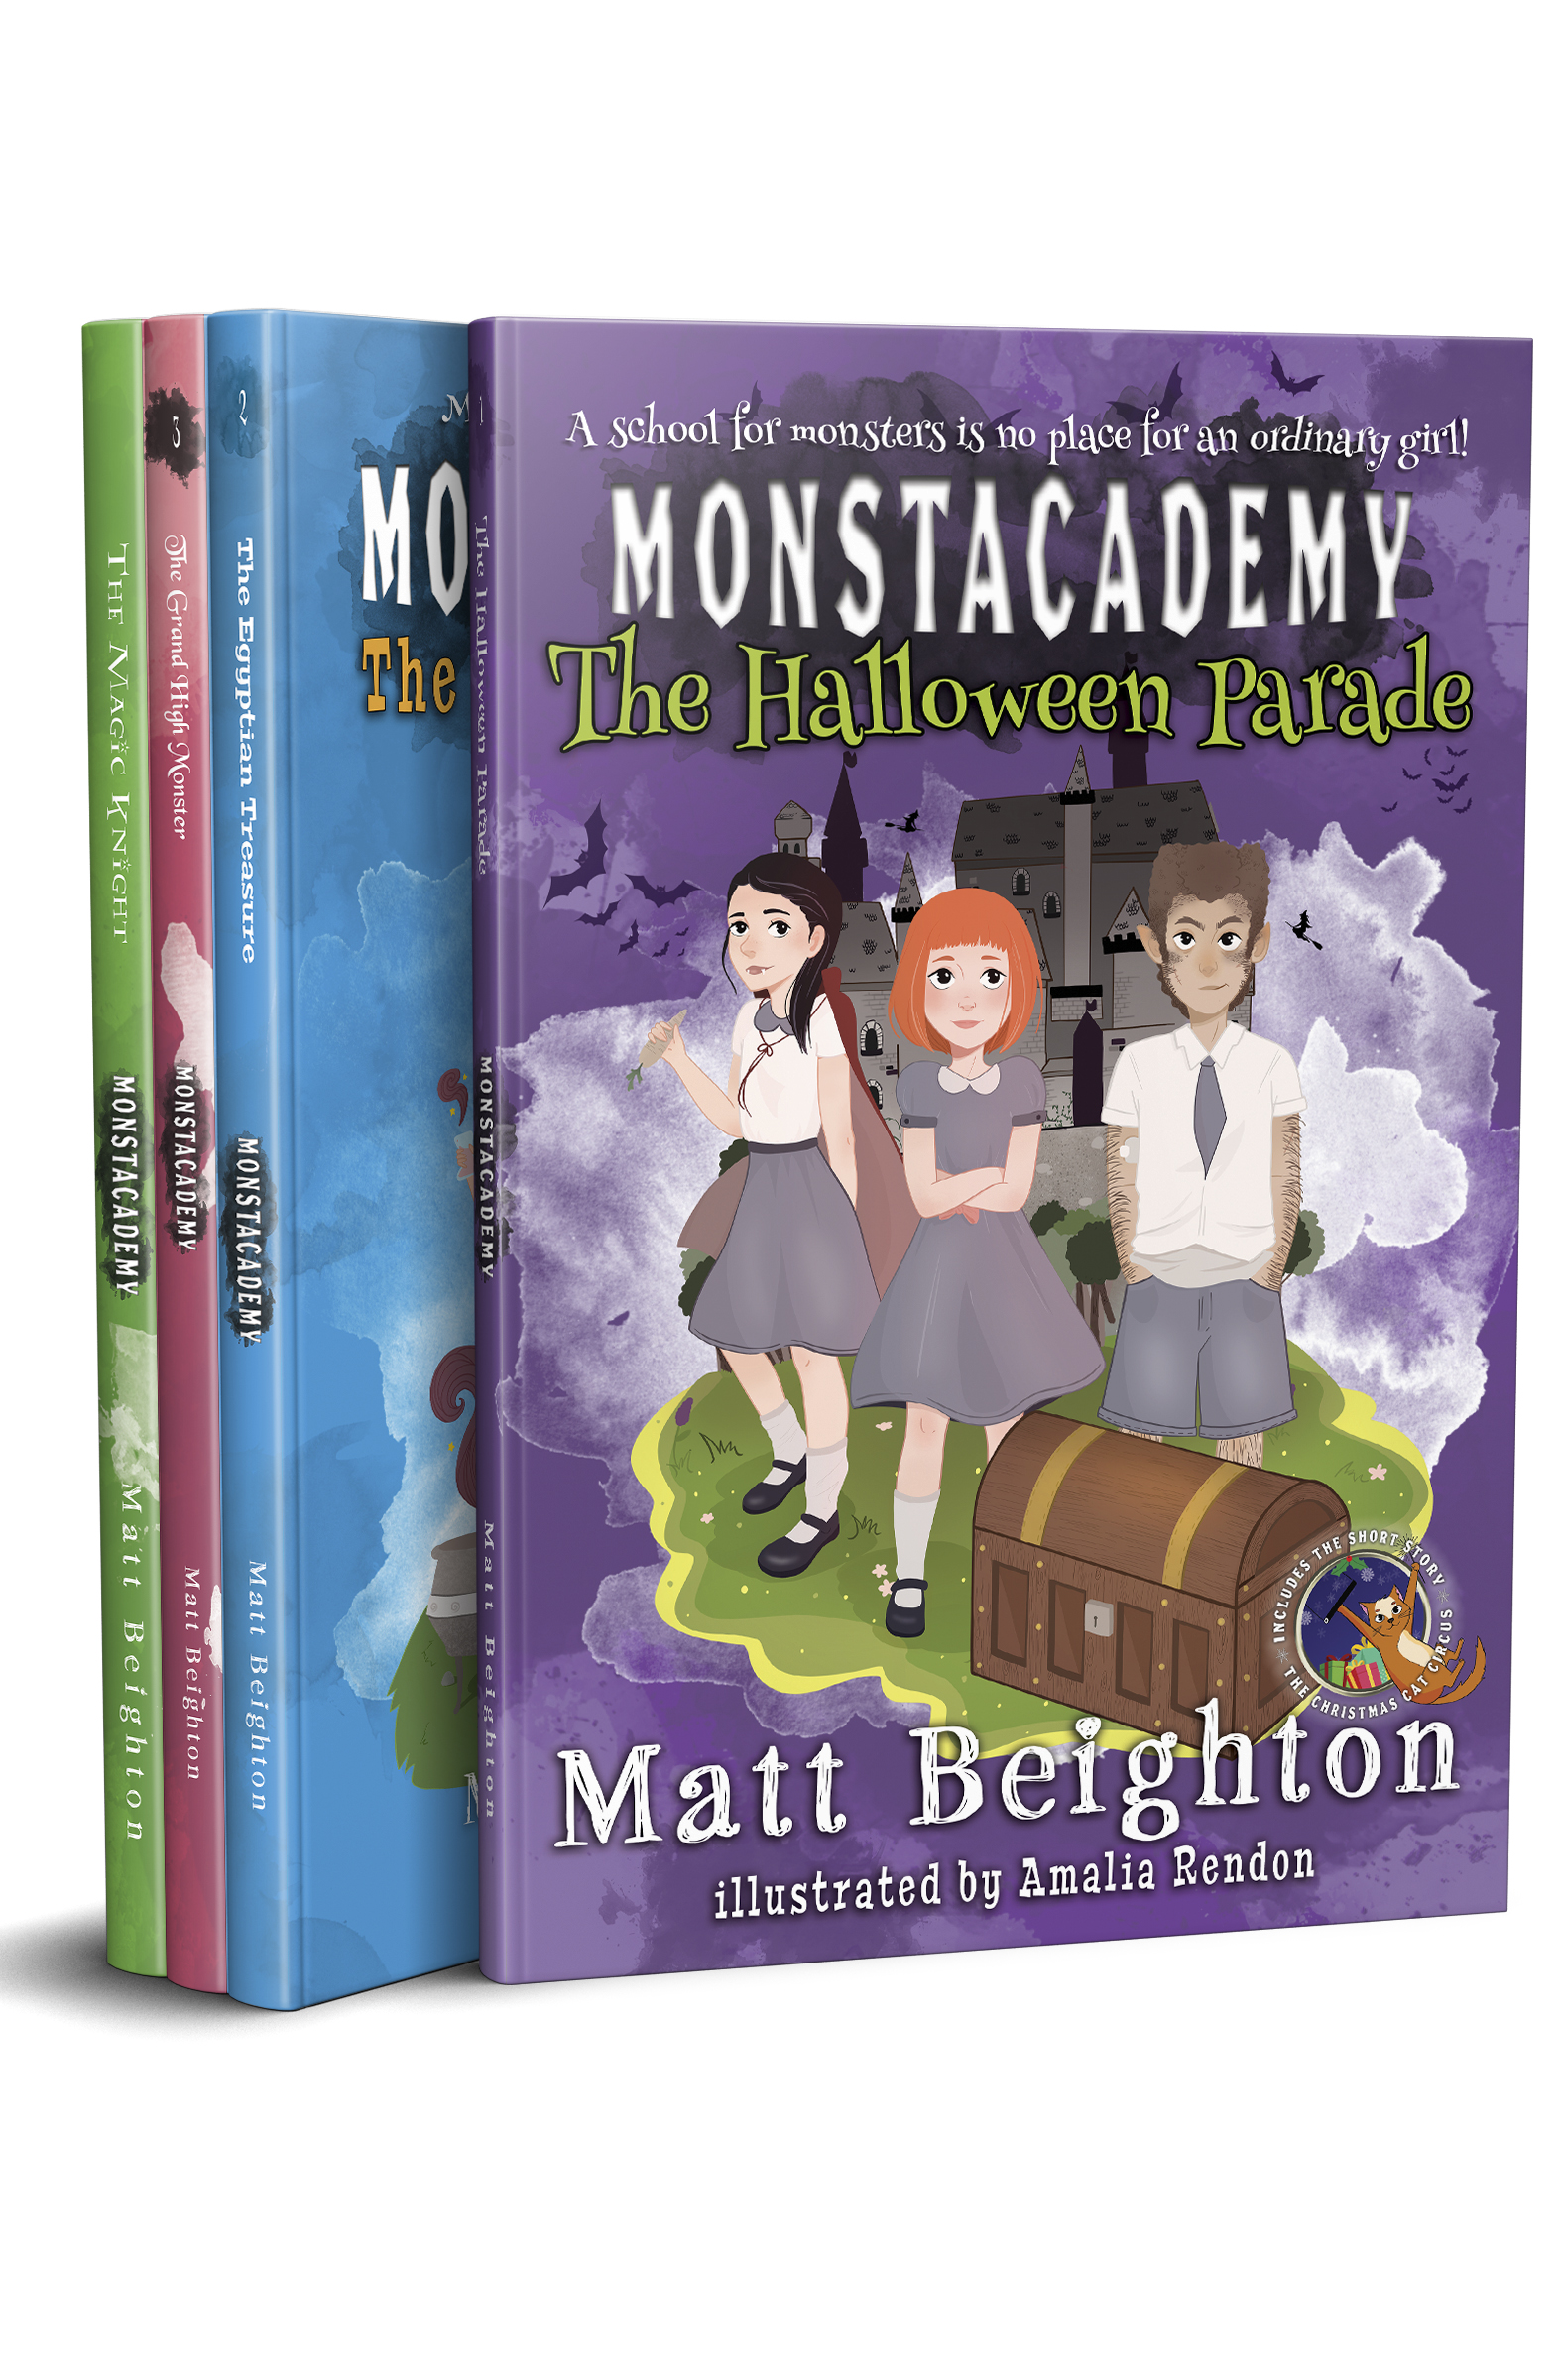 Monstacademy series covers